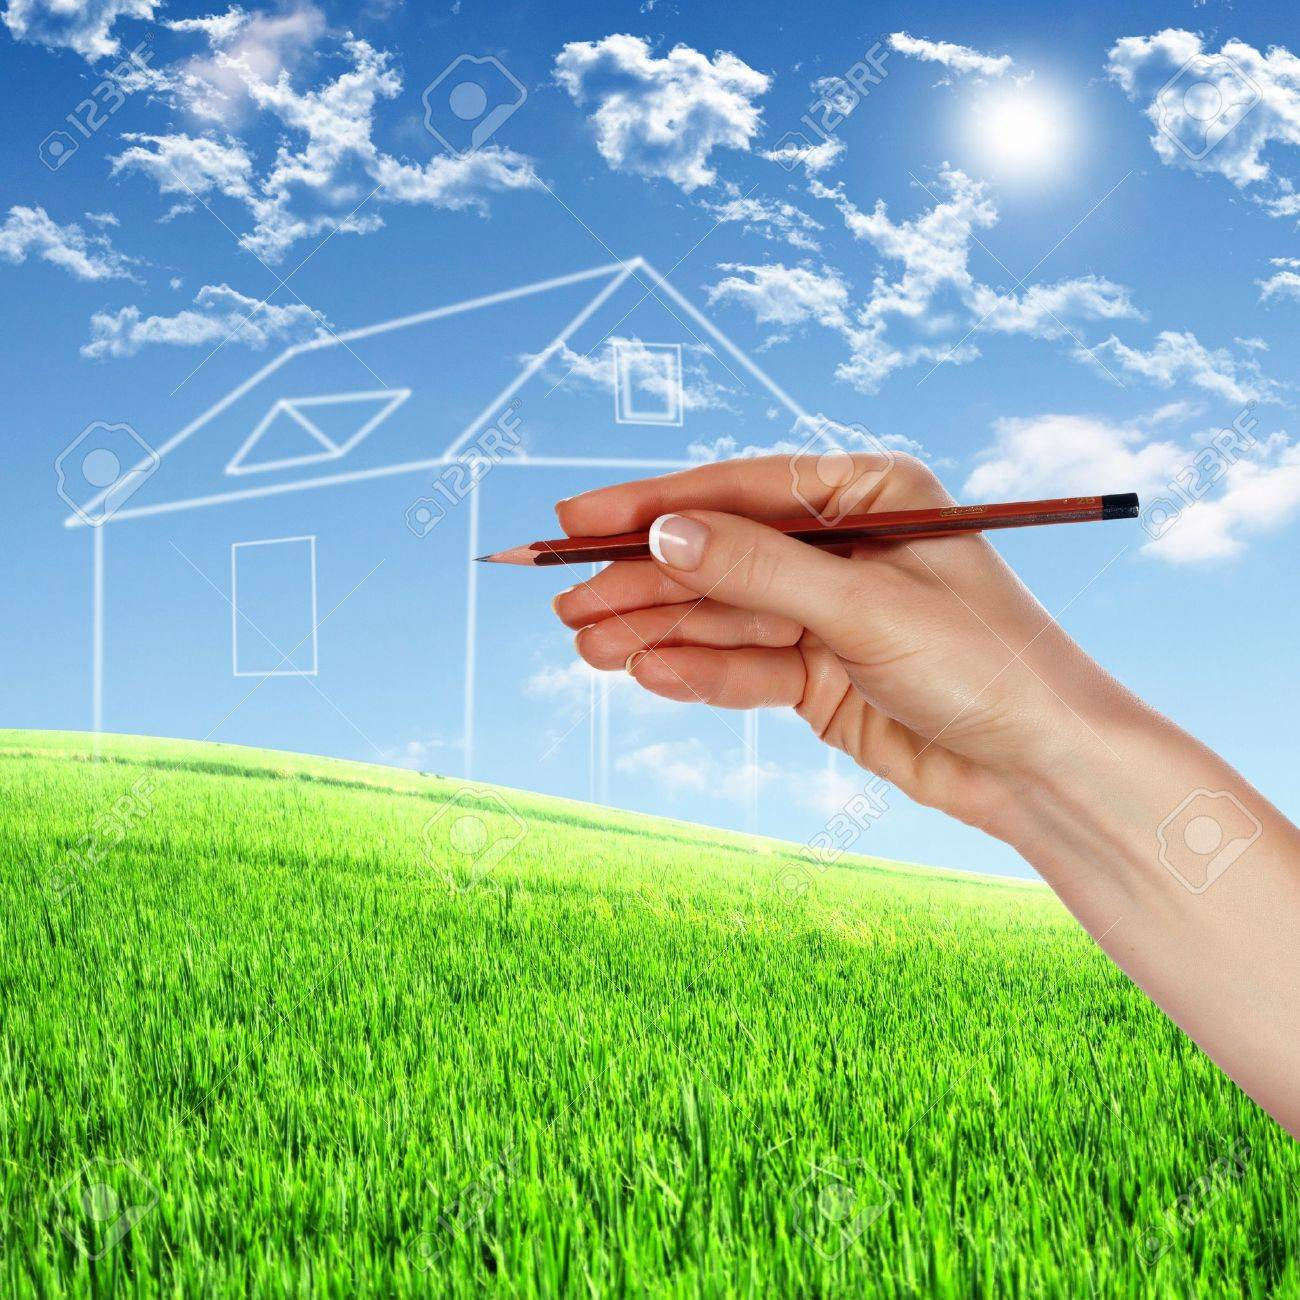 Picture of a house from white clouds against blue sky Stock Photo - 13197191